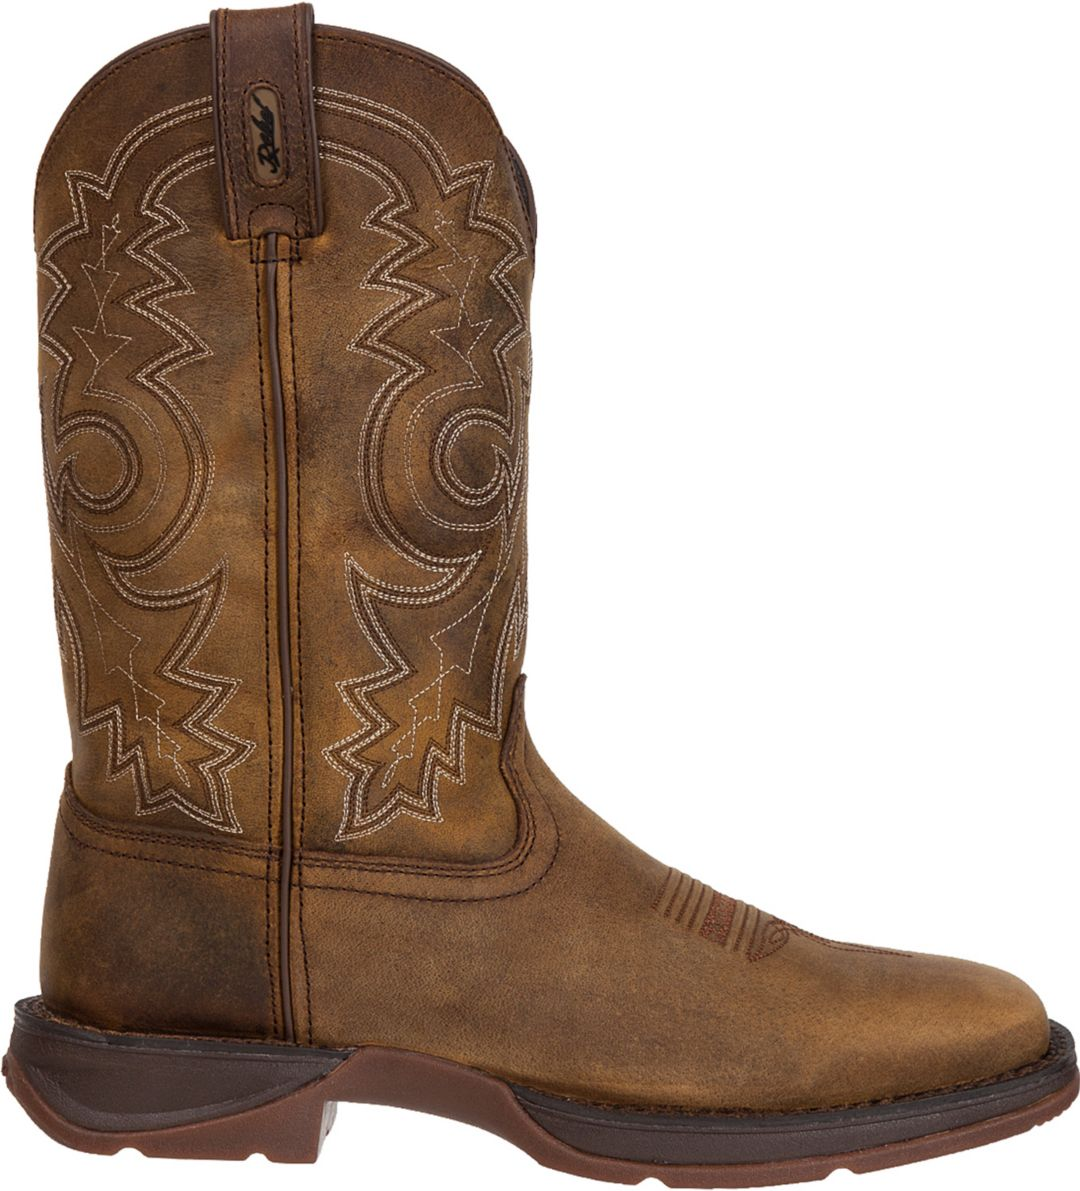 8bc04a3197d Durango Men's Rebel Pull-On Stitched Western Work Boots